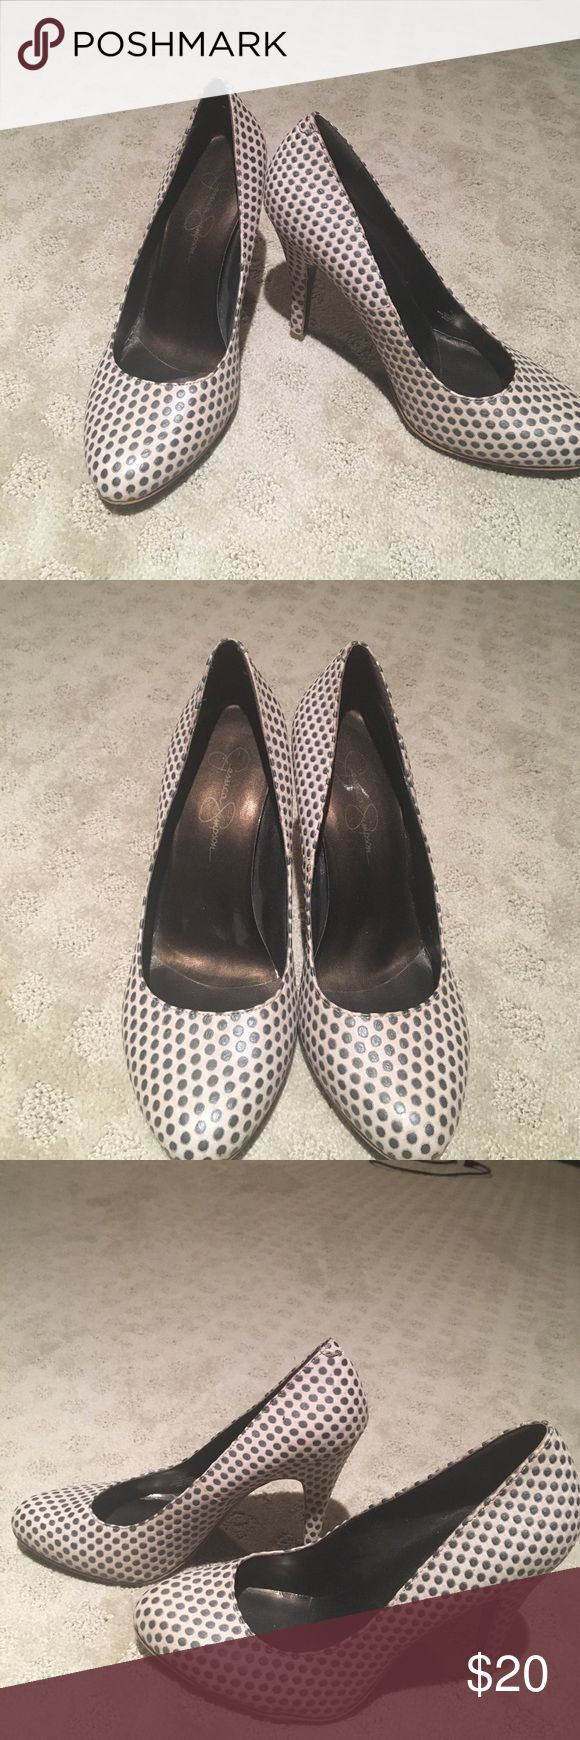 Jessica Simpson Polka Dot Pumps Tan and Gray polka dot pumps. Very gently used. 3.5 inch heel. Size 7. Jessica Simpson Shoes Heels